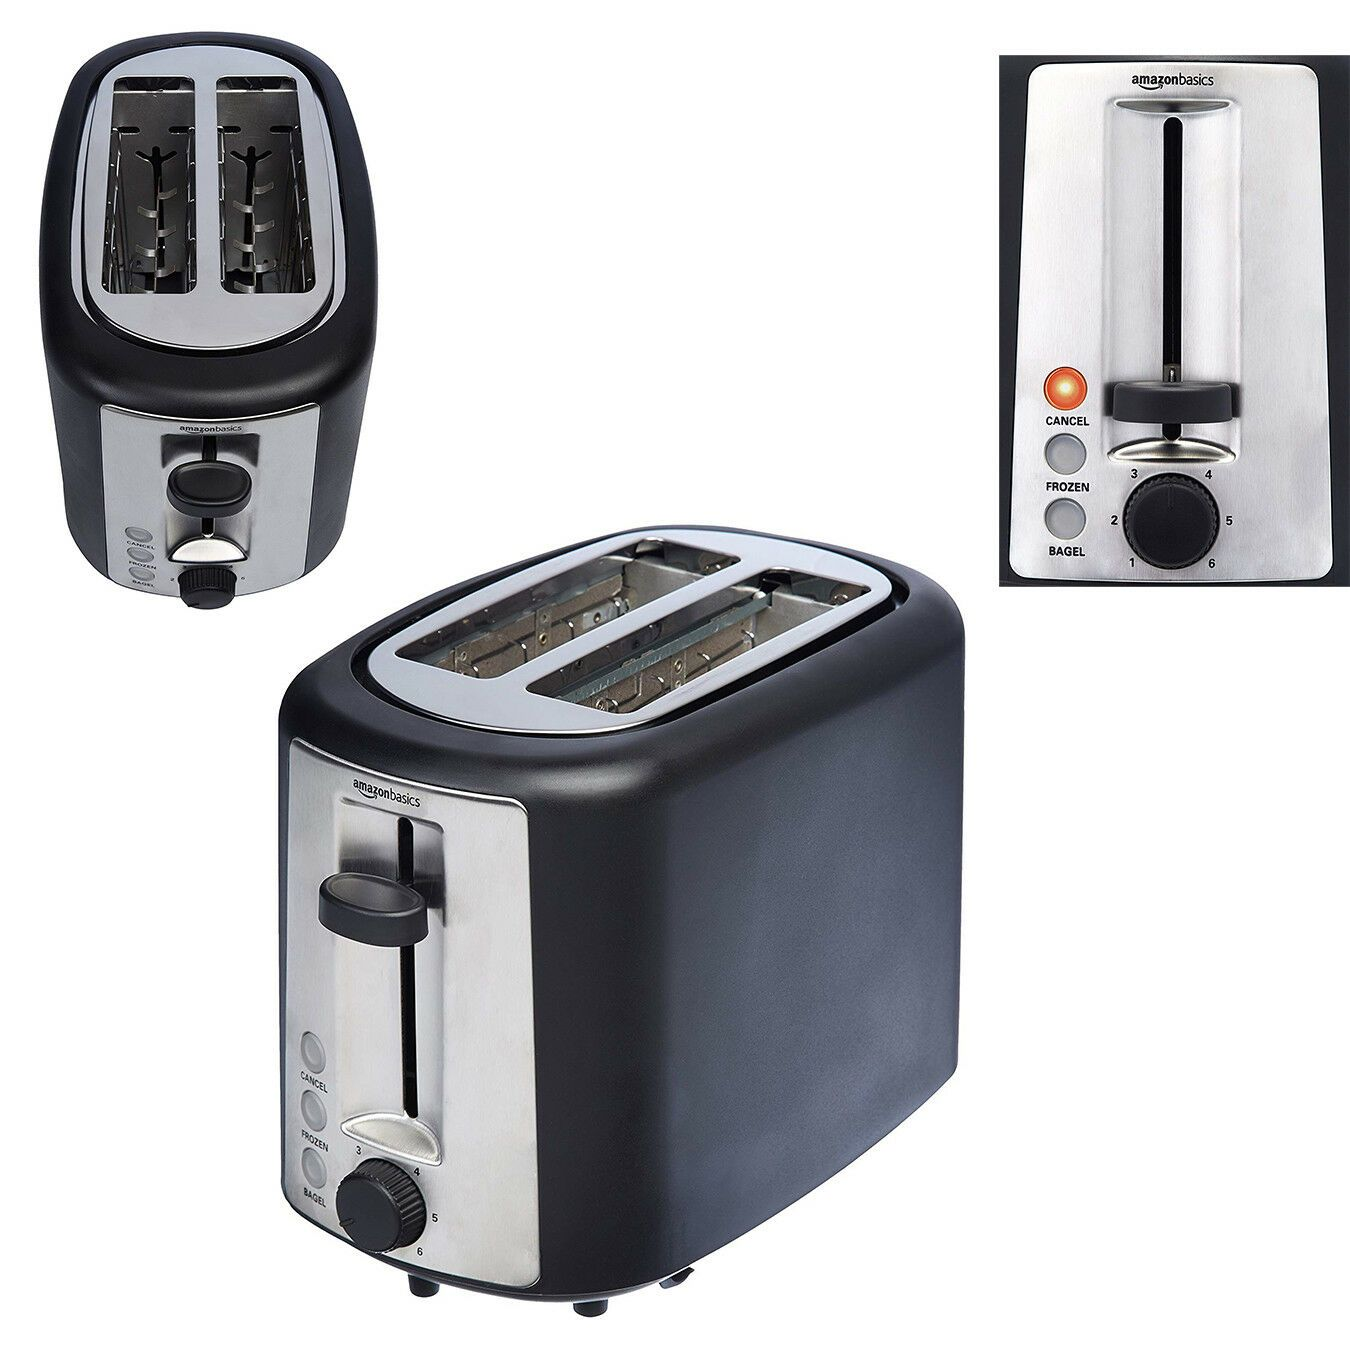 Https Ift Tt 2tv4r7m Toasters Ideas Of Toasters Toasters 2 Slice Toaster Extra Wide Slots W Crumb Tray 6 Sh Toaster Bread Toaster Cuisinart Toaster